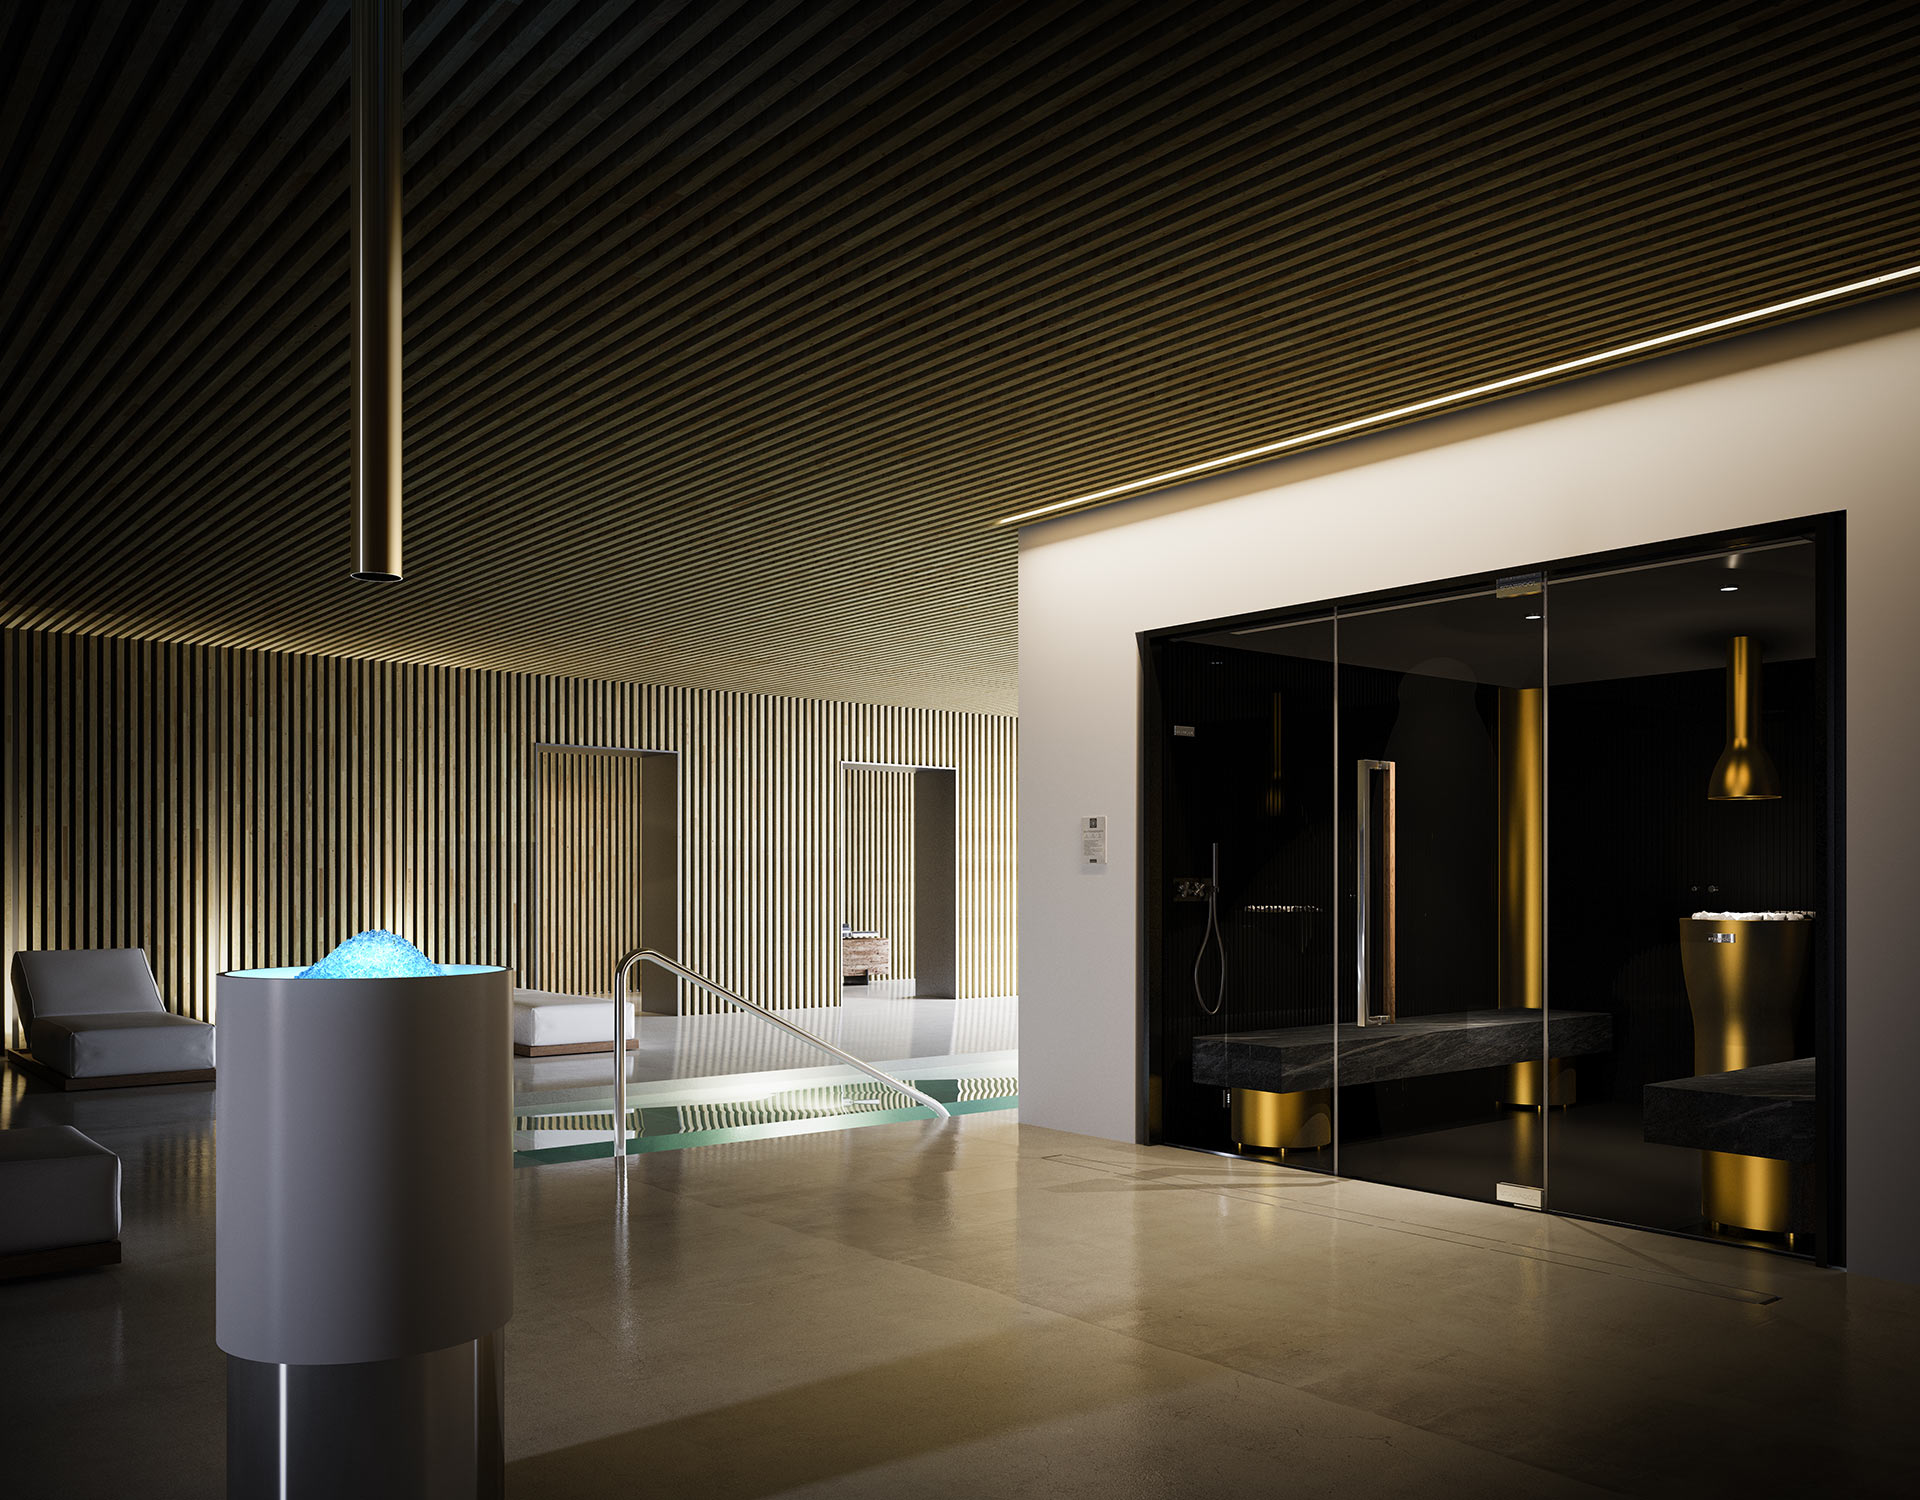 Glamour Mediterranean Pro - Guide to your luxury wellness spa